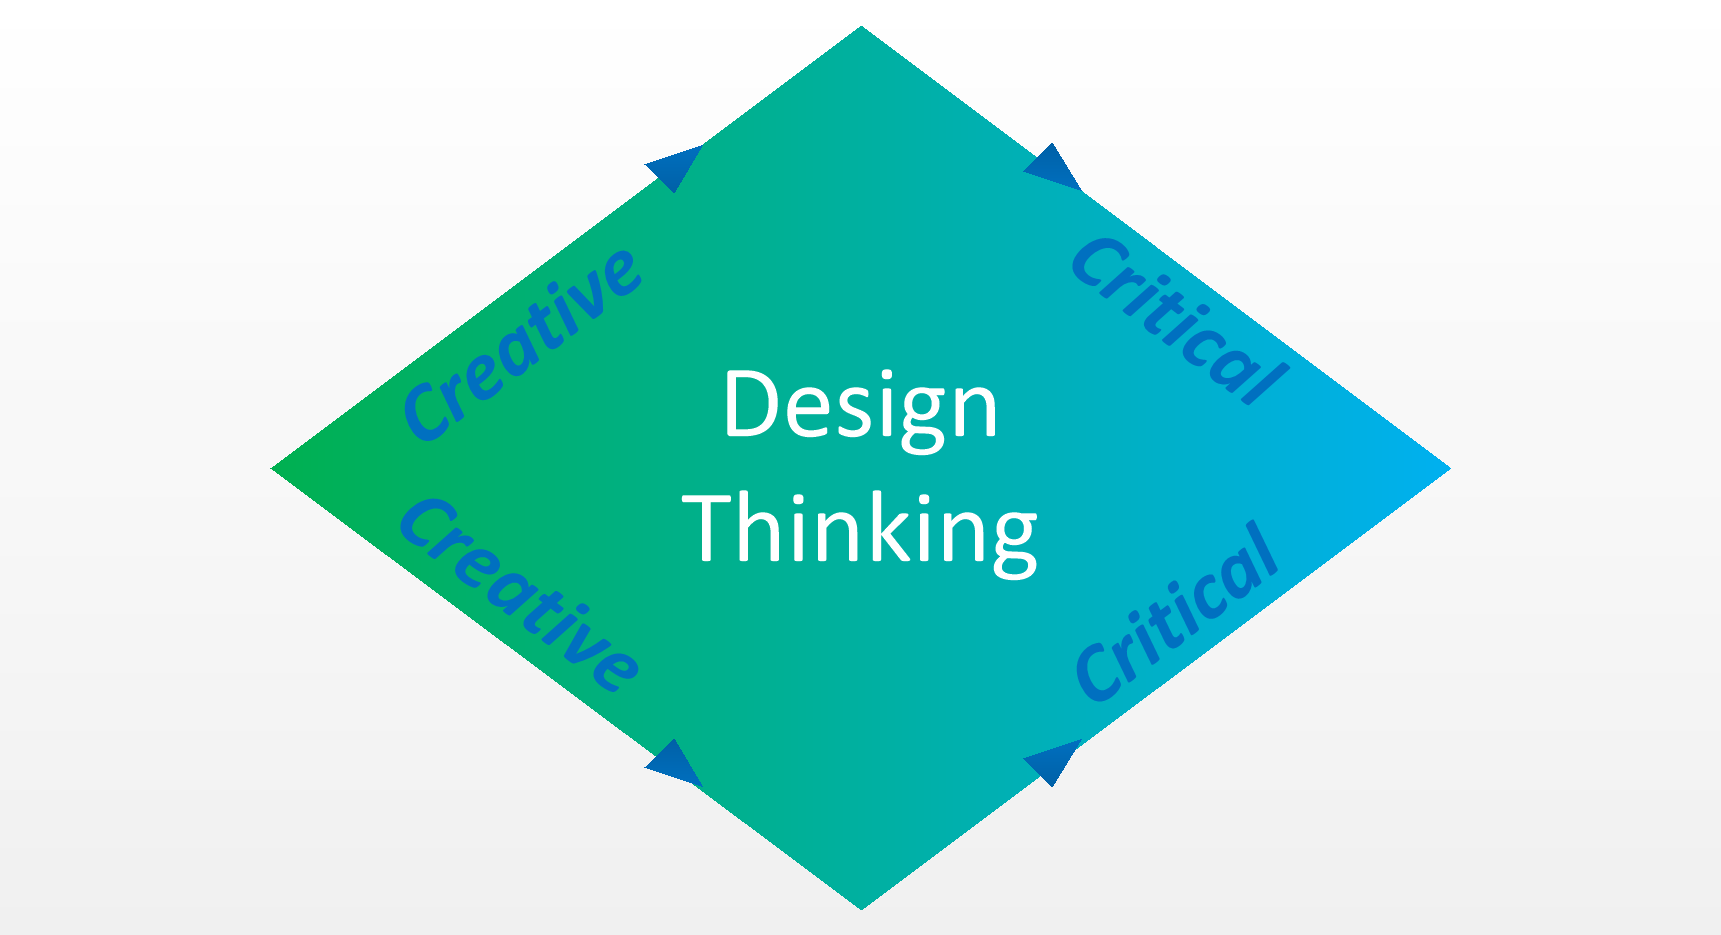 Design Thinking: Critical Thinking and Creativity in harmony